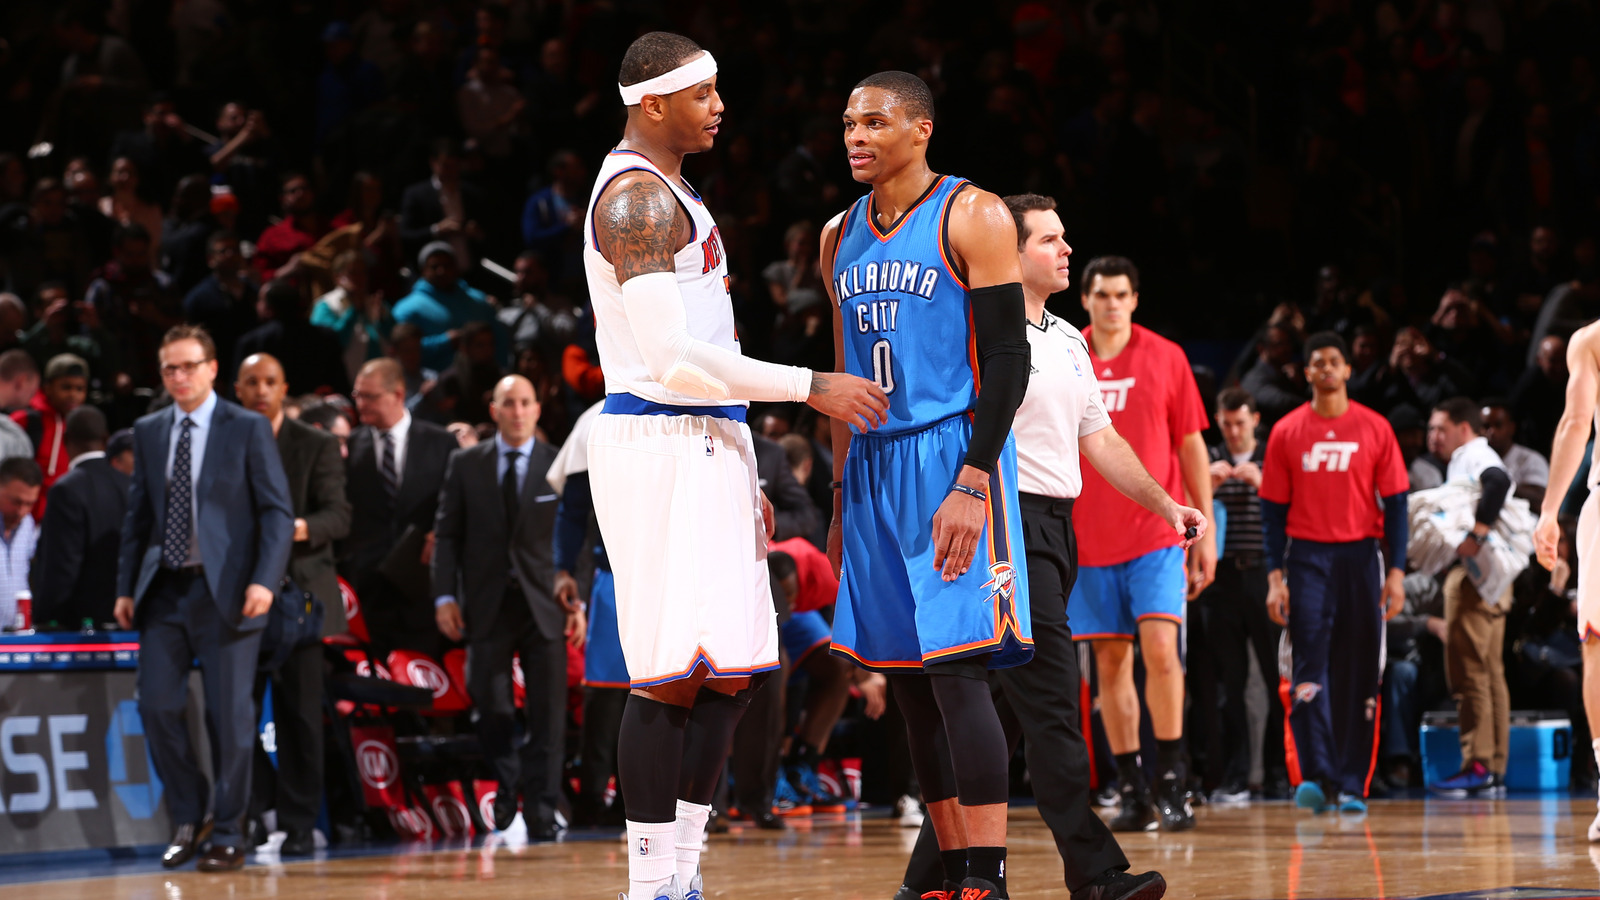 Melo Drama is Over, Carmelo Goes To Thunder